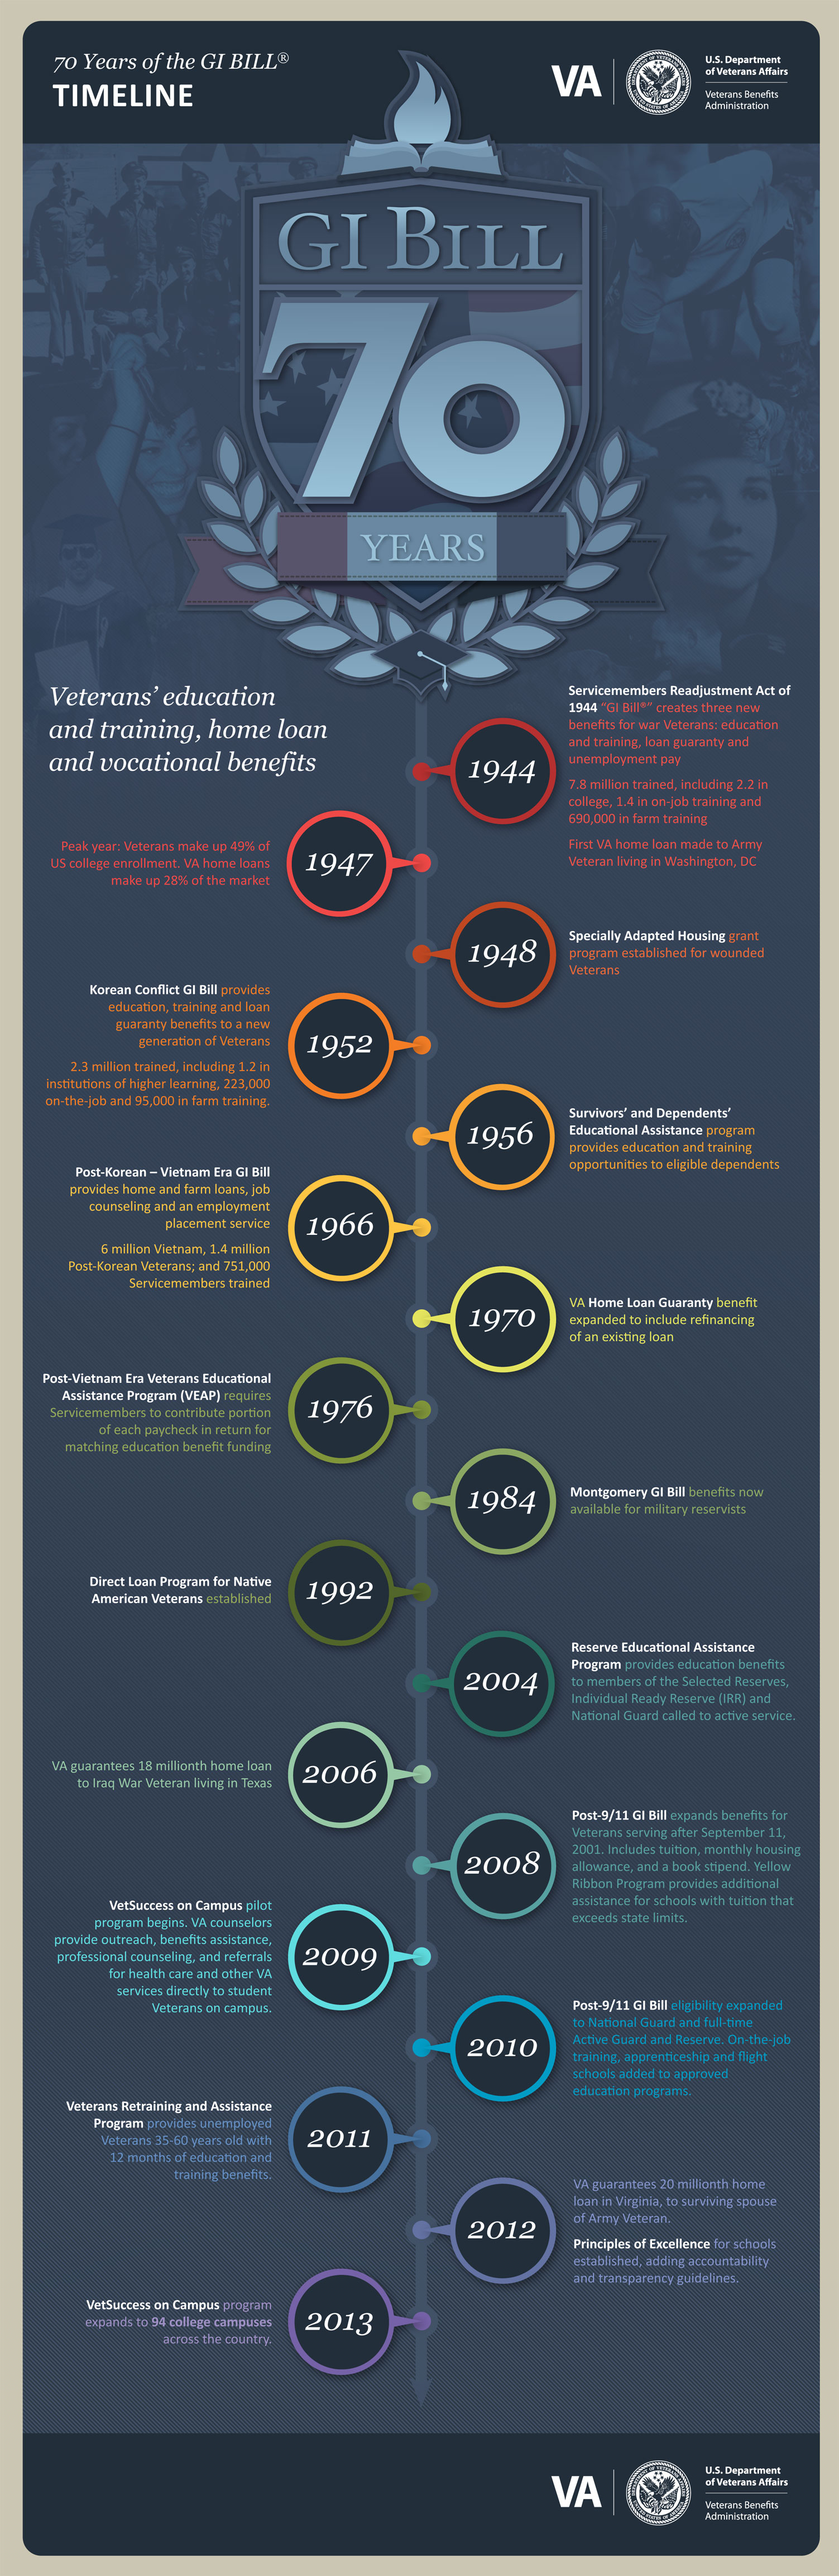 70th GI Bill Anniversary Infographic: TIMELINE  70 YEARS OF THE GI BILL  Veterans' education and training, home loan and vocational benefits  1944 Servicemembers Readjustment Act of 1944